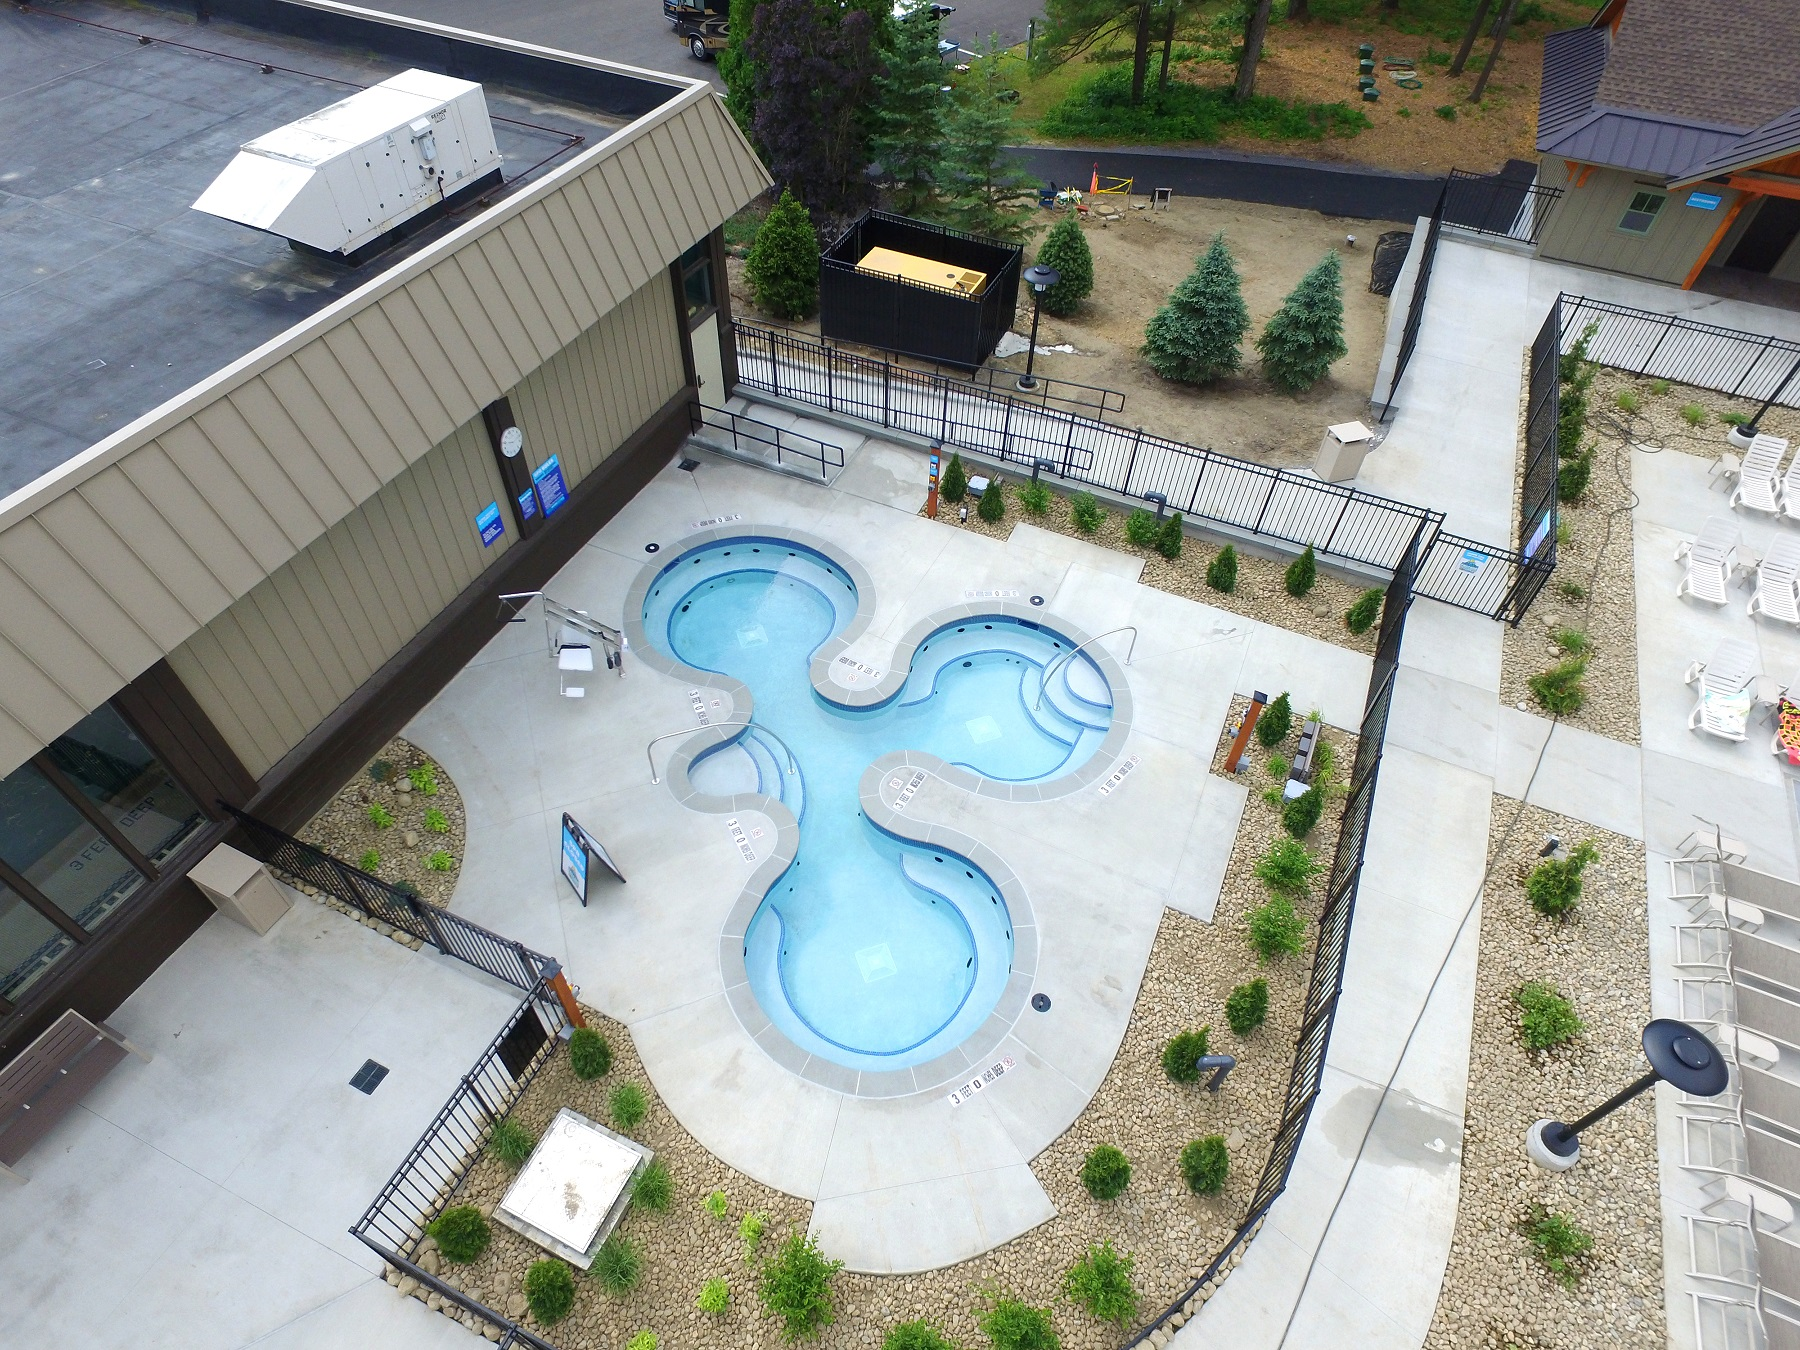 A birds eye view of Cascade Coves hottub area. 3 tubs are shown surrounded by a landscape area.